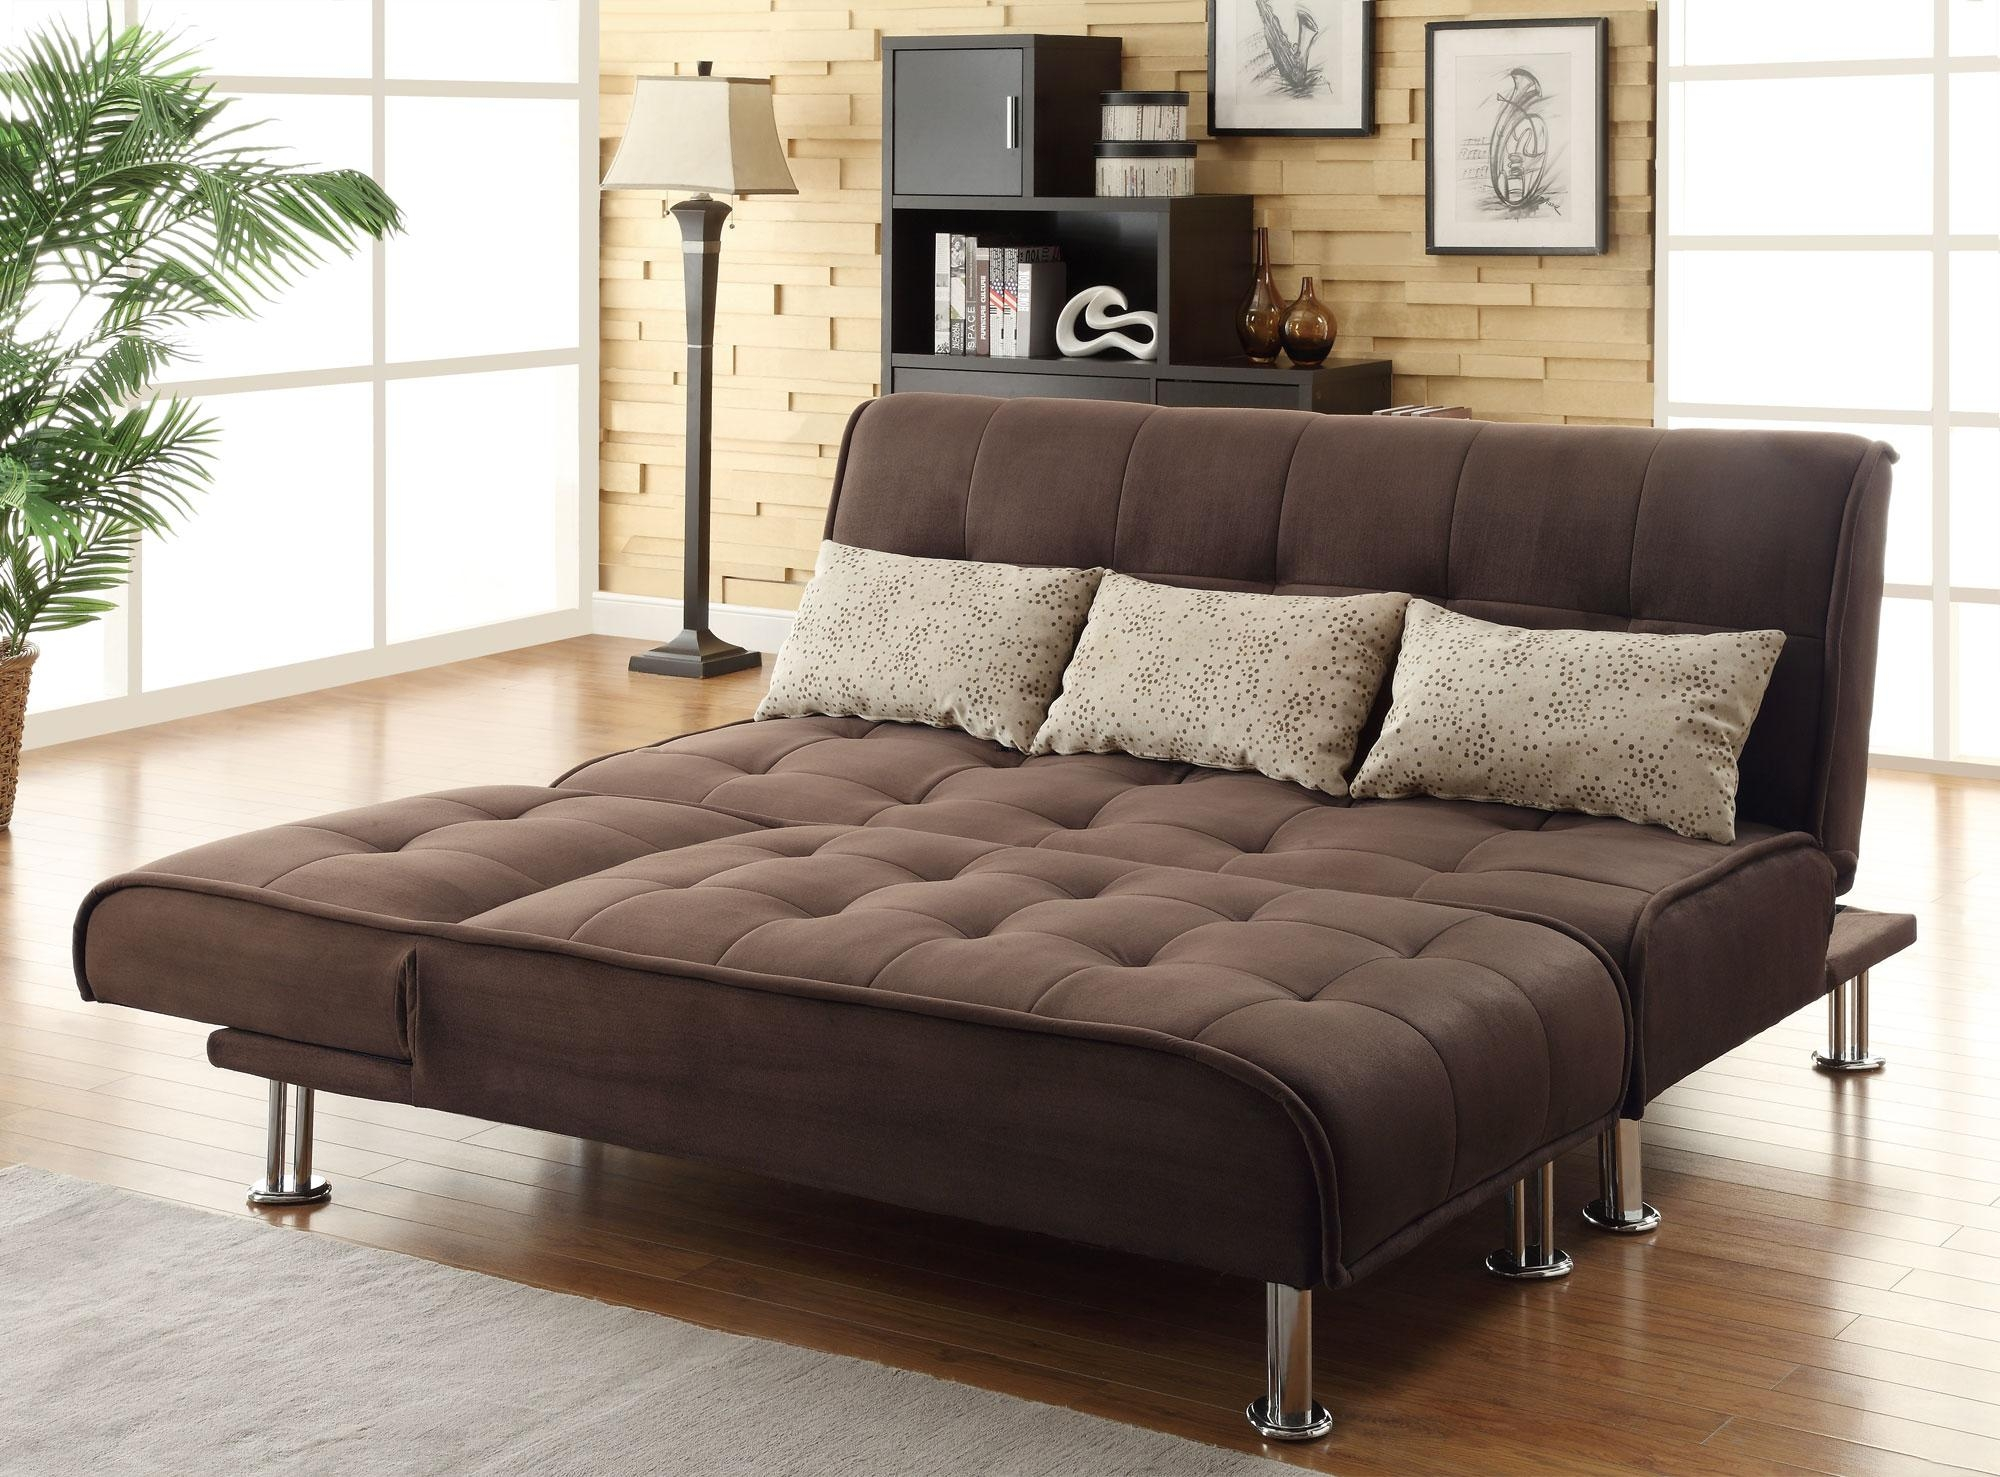 Great Futon Style Sofa Beds 44 For Home Pictures With Futon Style Within Fulton Sofa Beds (Image 14 of 21)